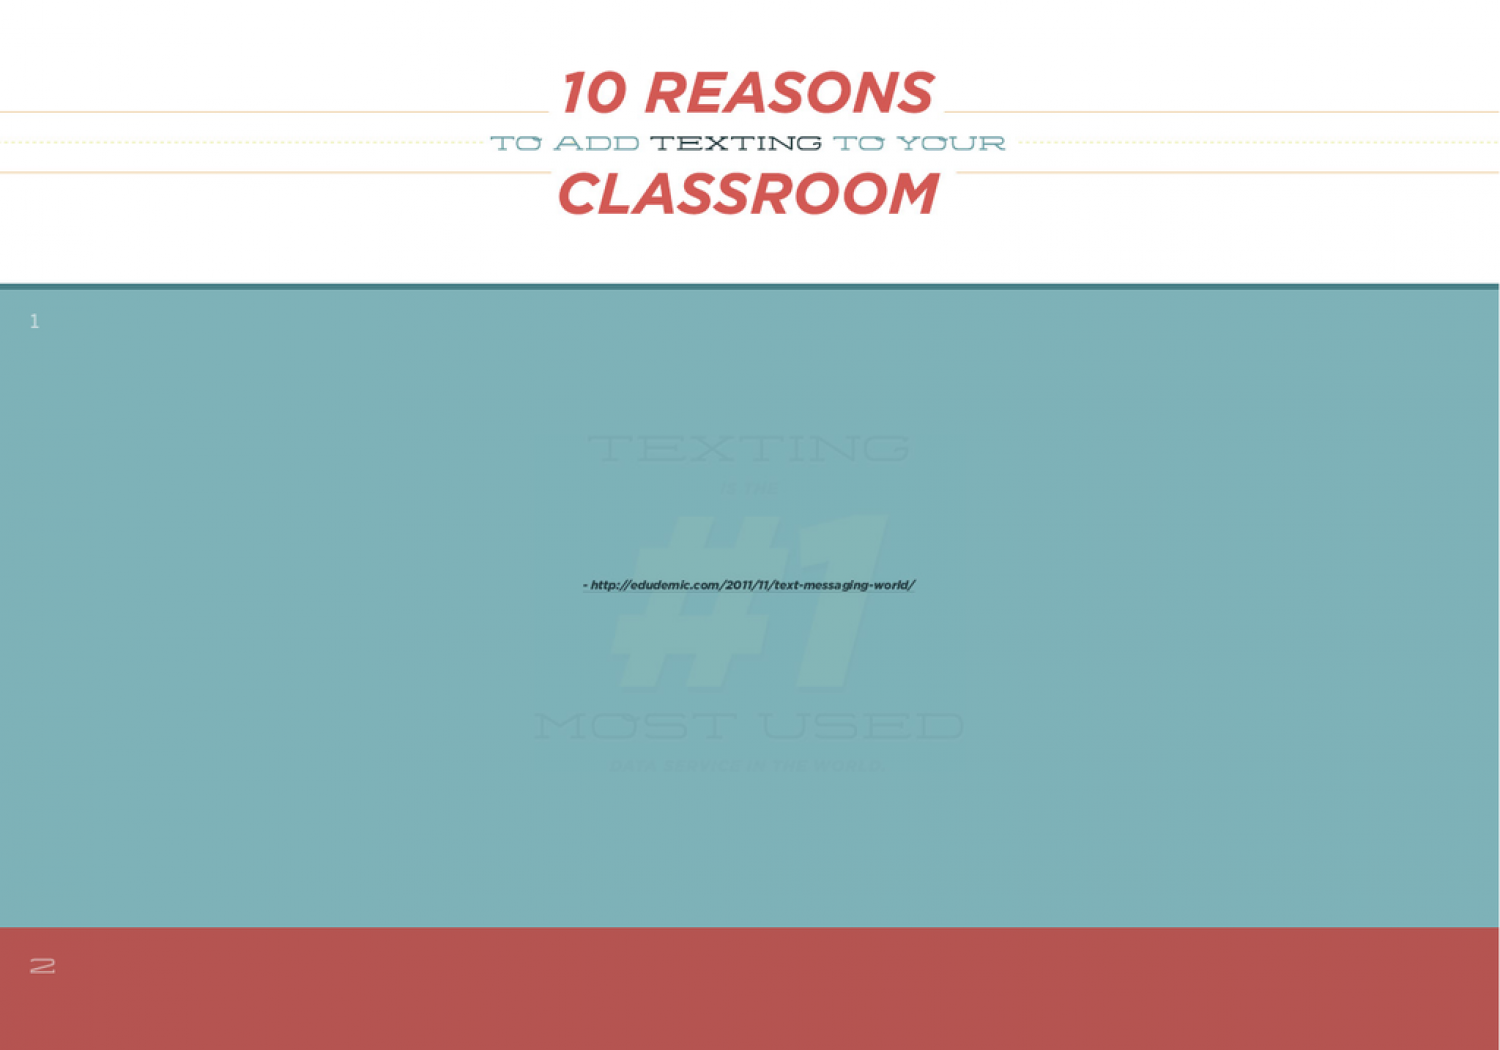 10 Reasons to add texting to your classroom Infographic